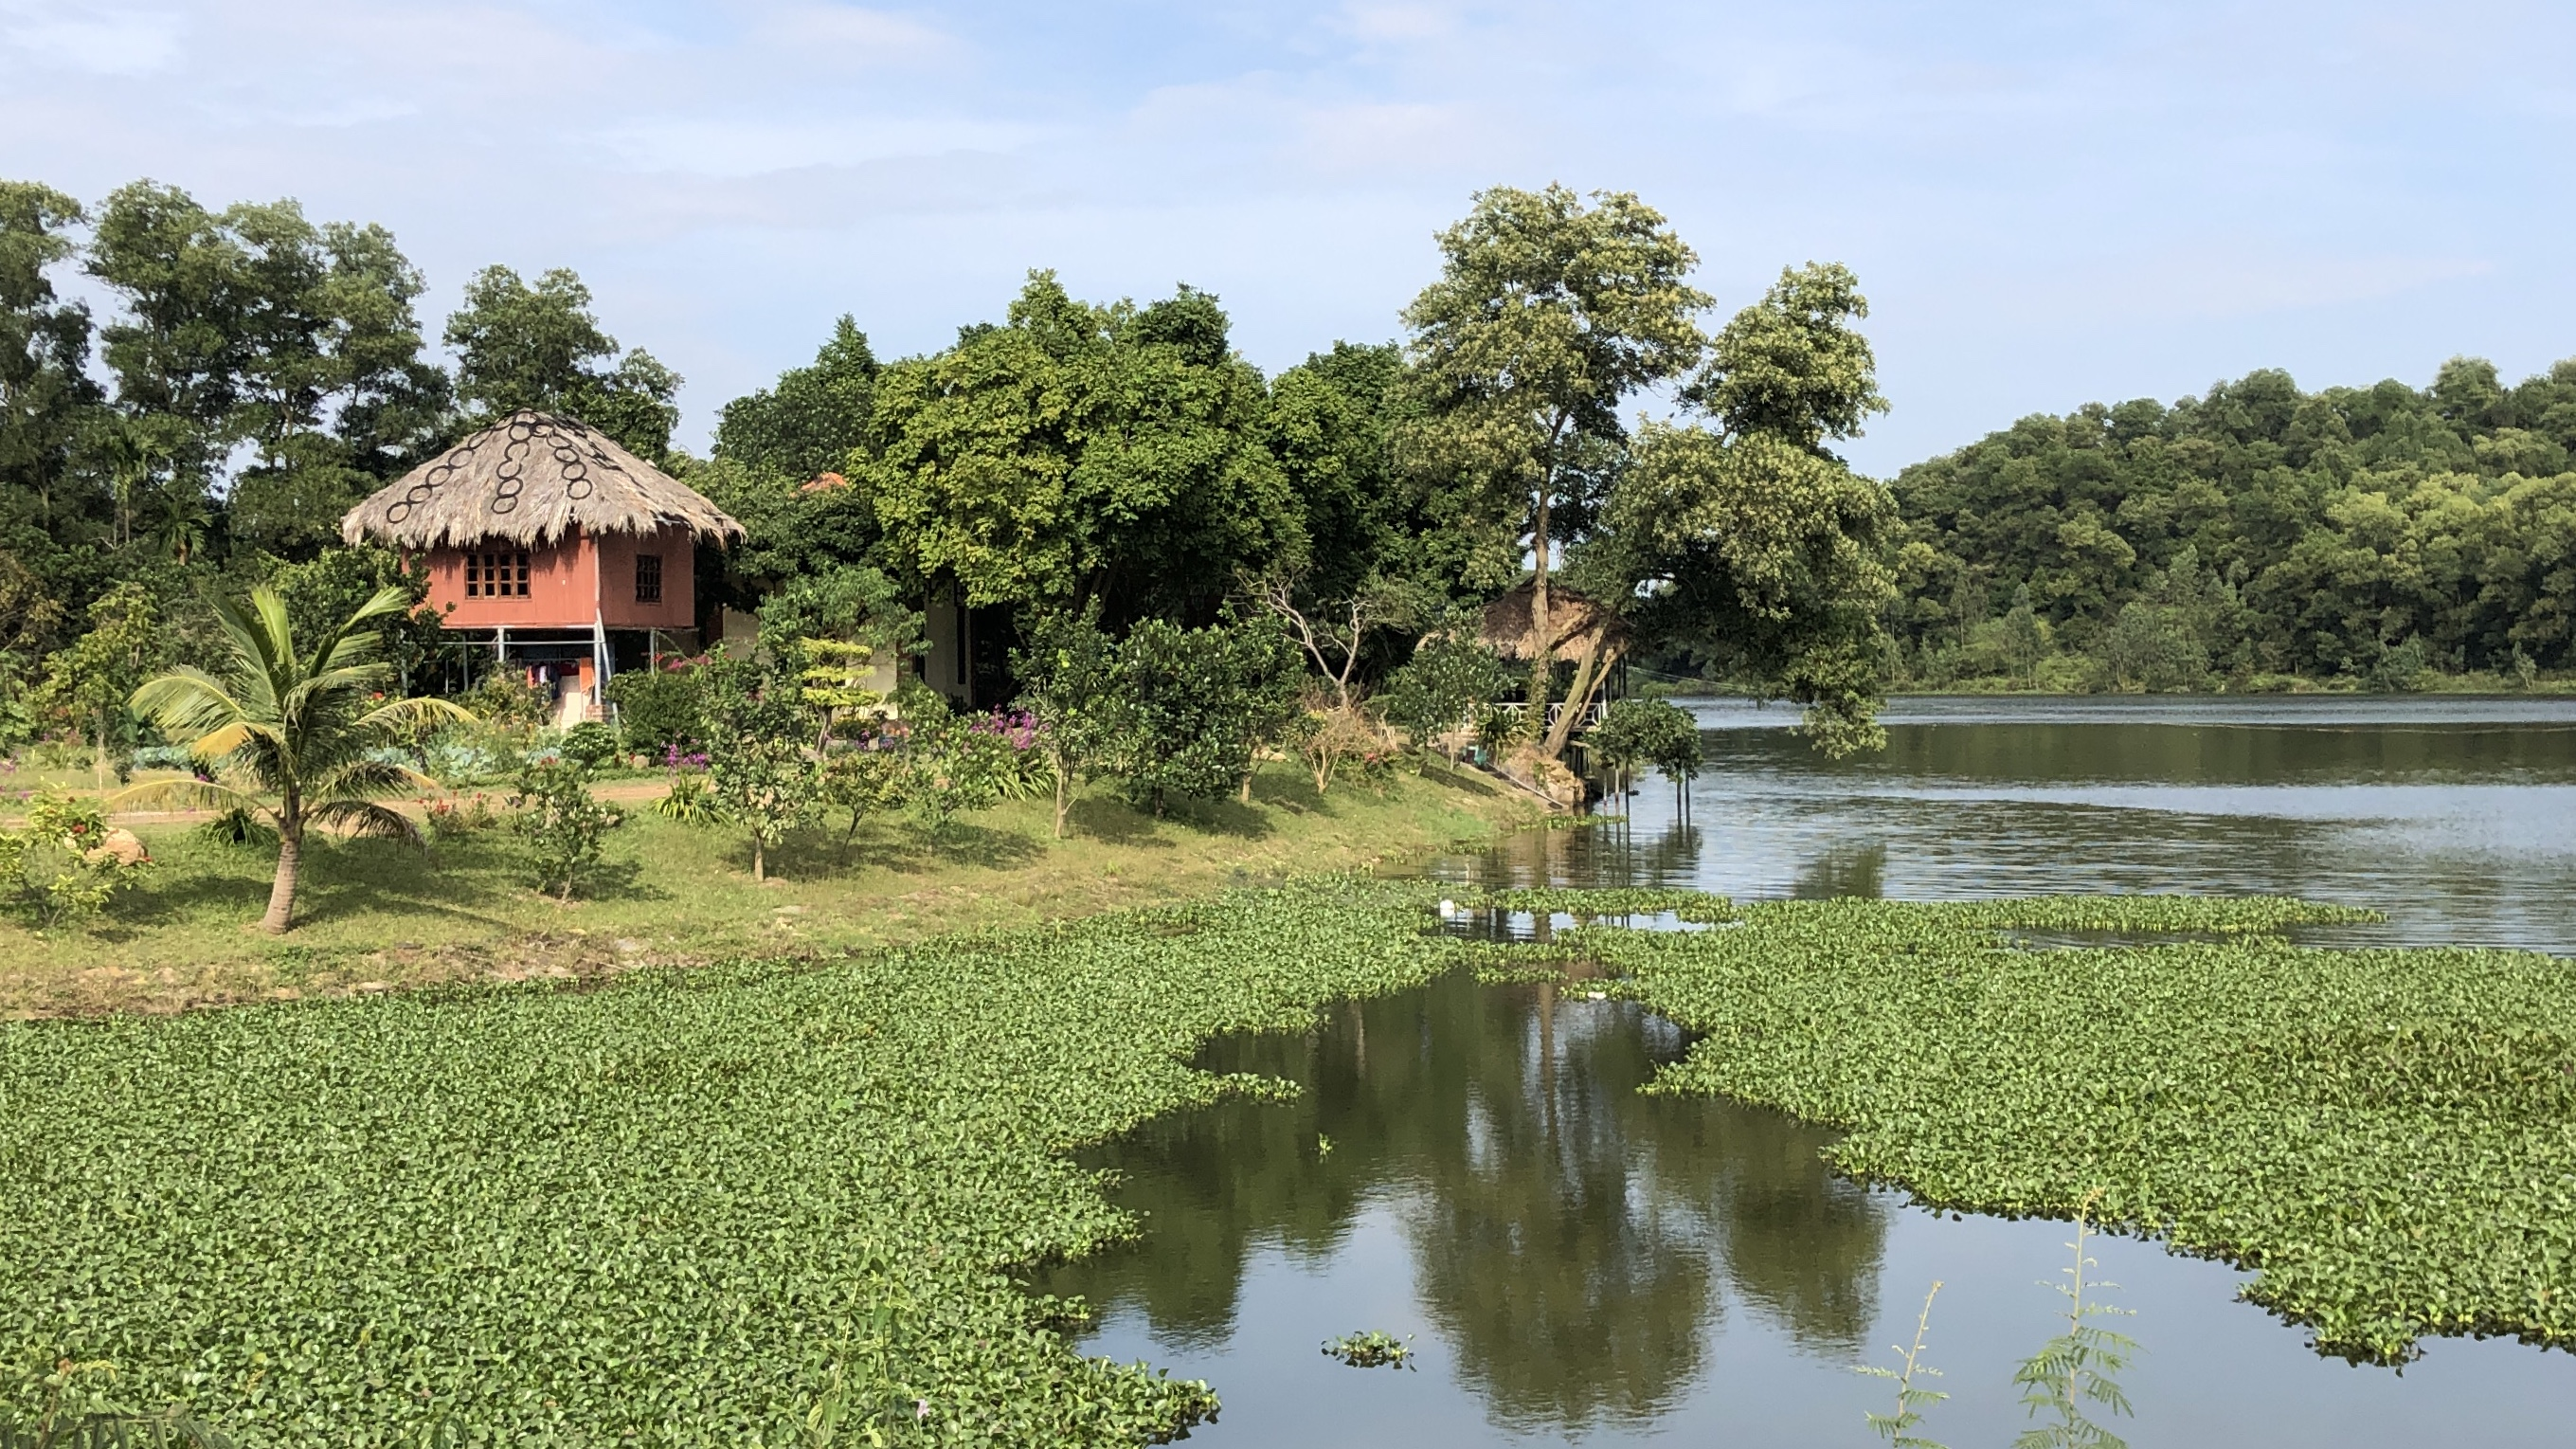 a peaceful pond in soc son district hanoi vietnam IMG_9450.jpg